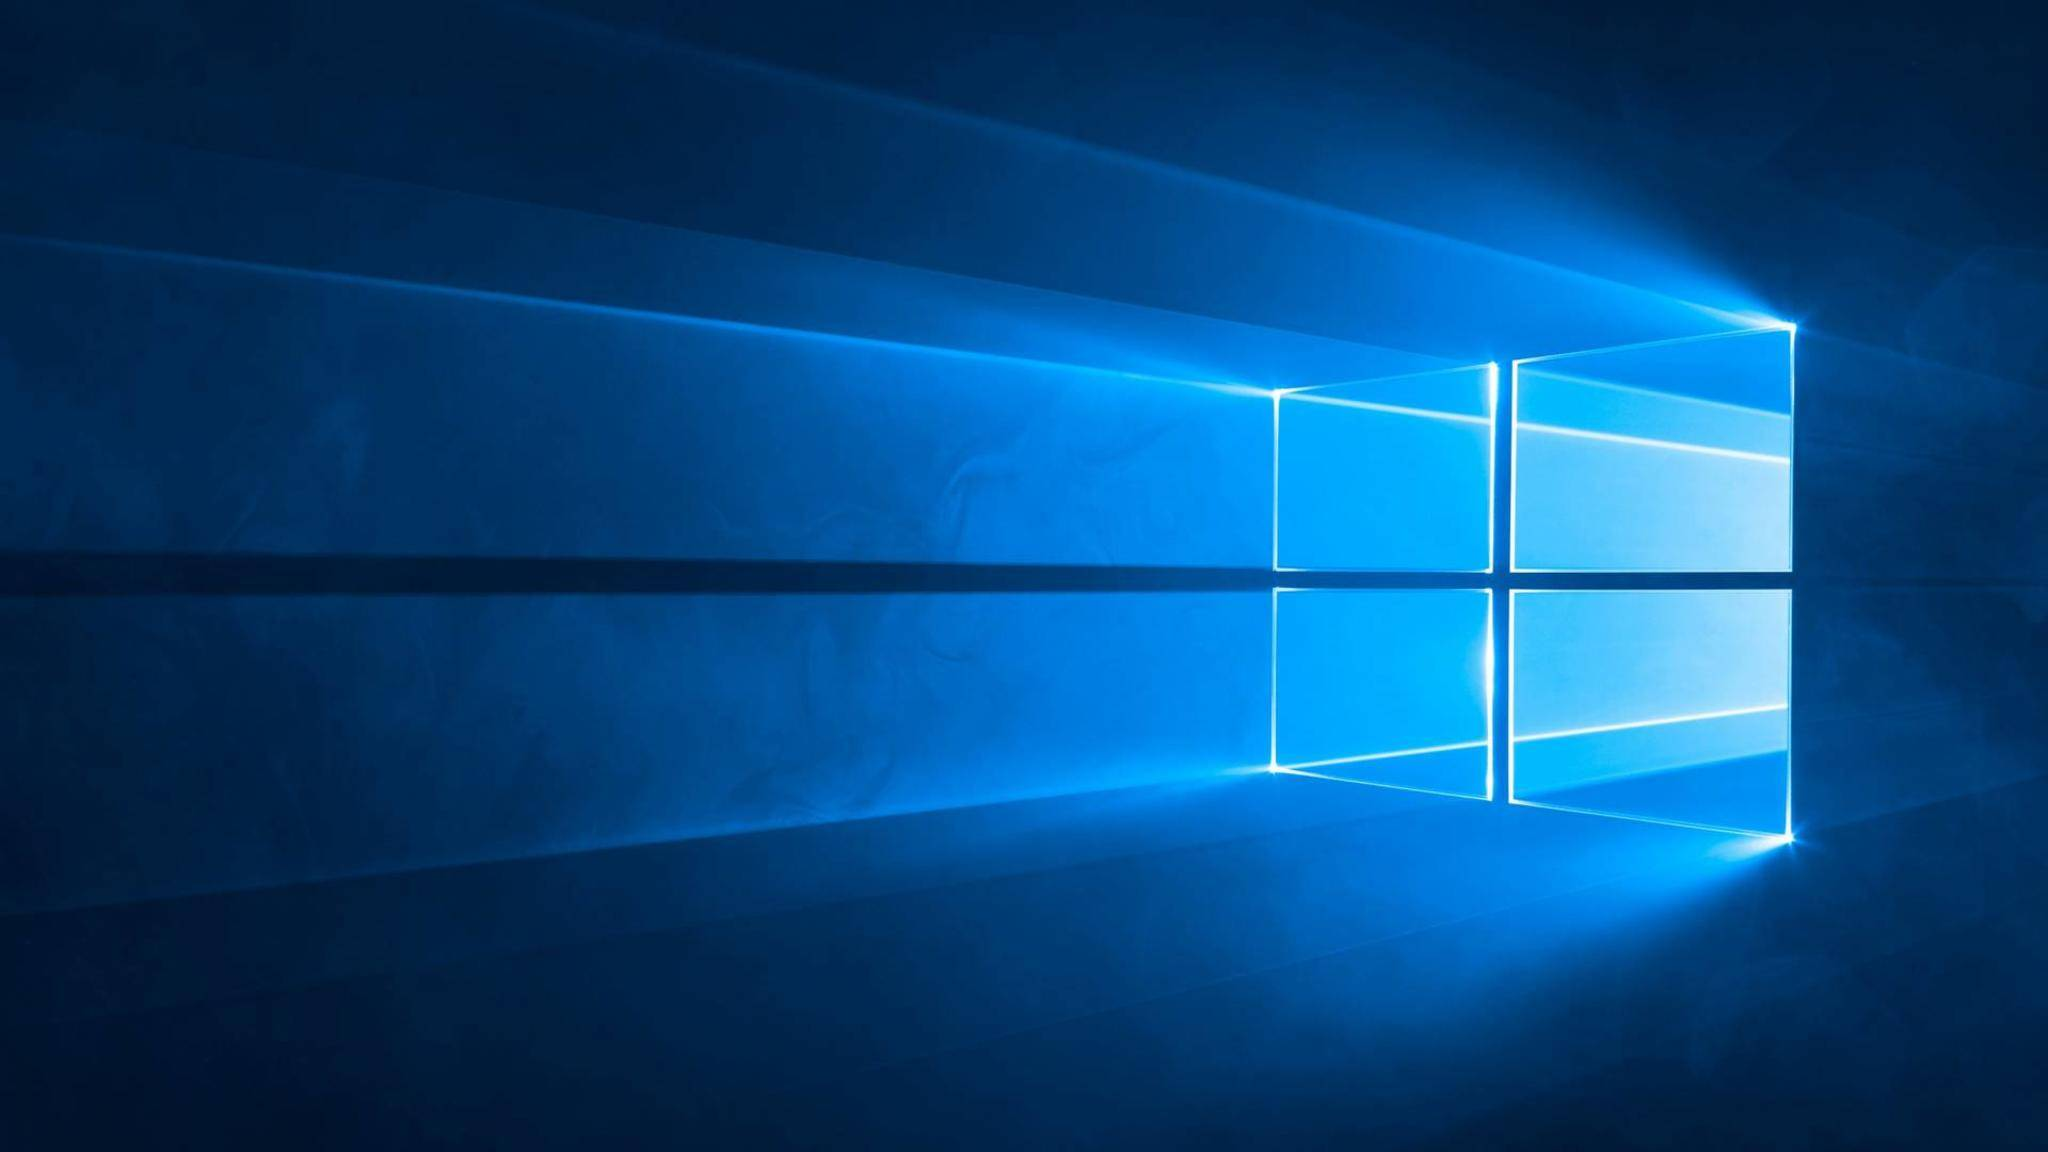 So gelangst Du in den abgesicherten Modus von Windows 10.